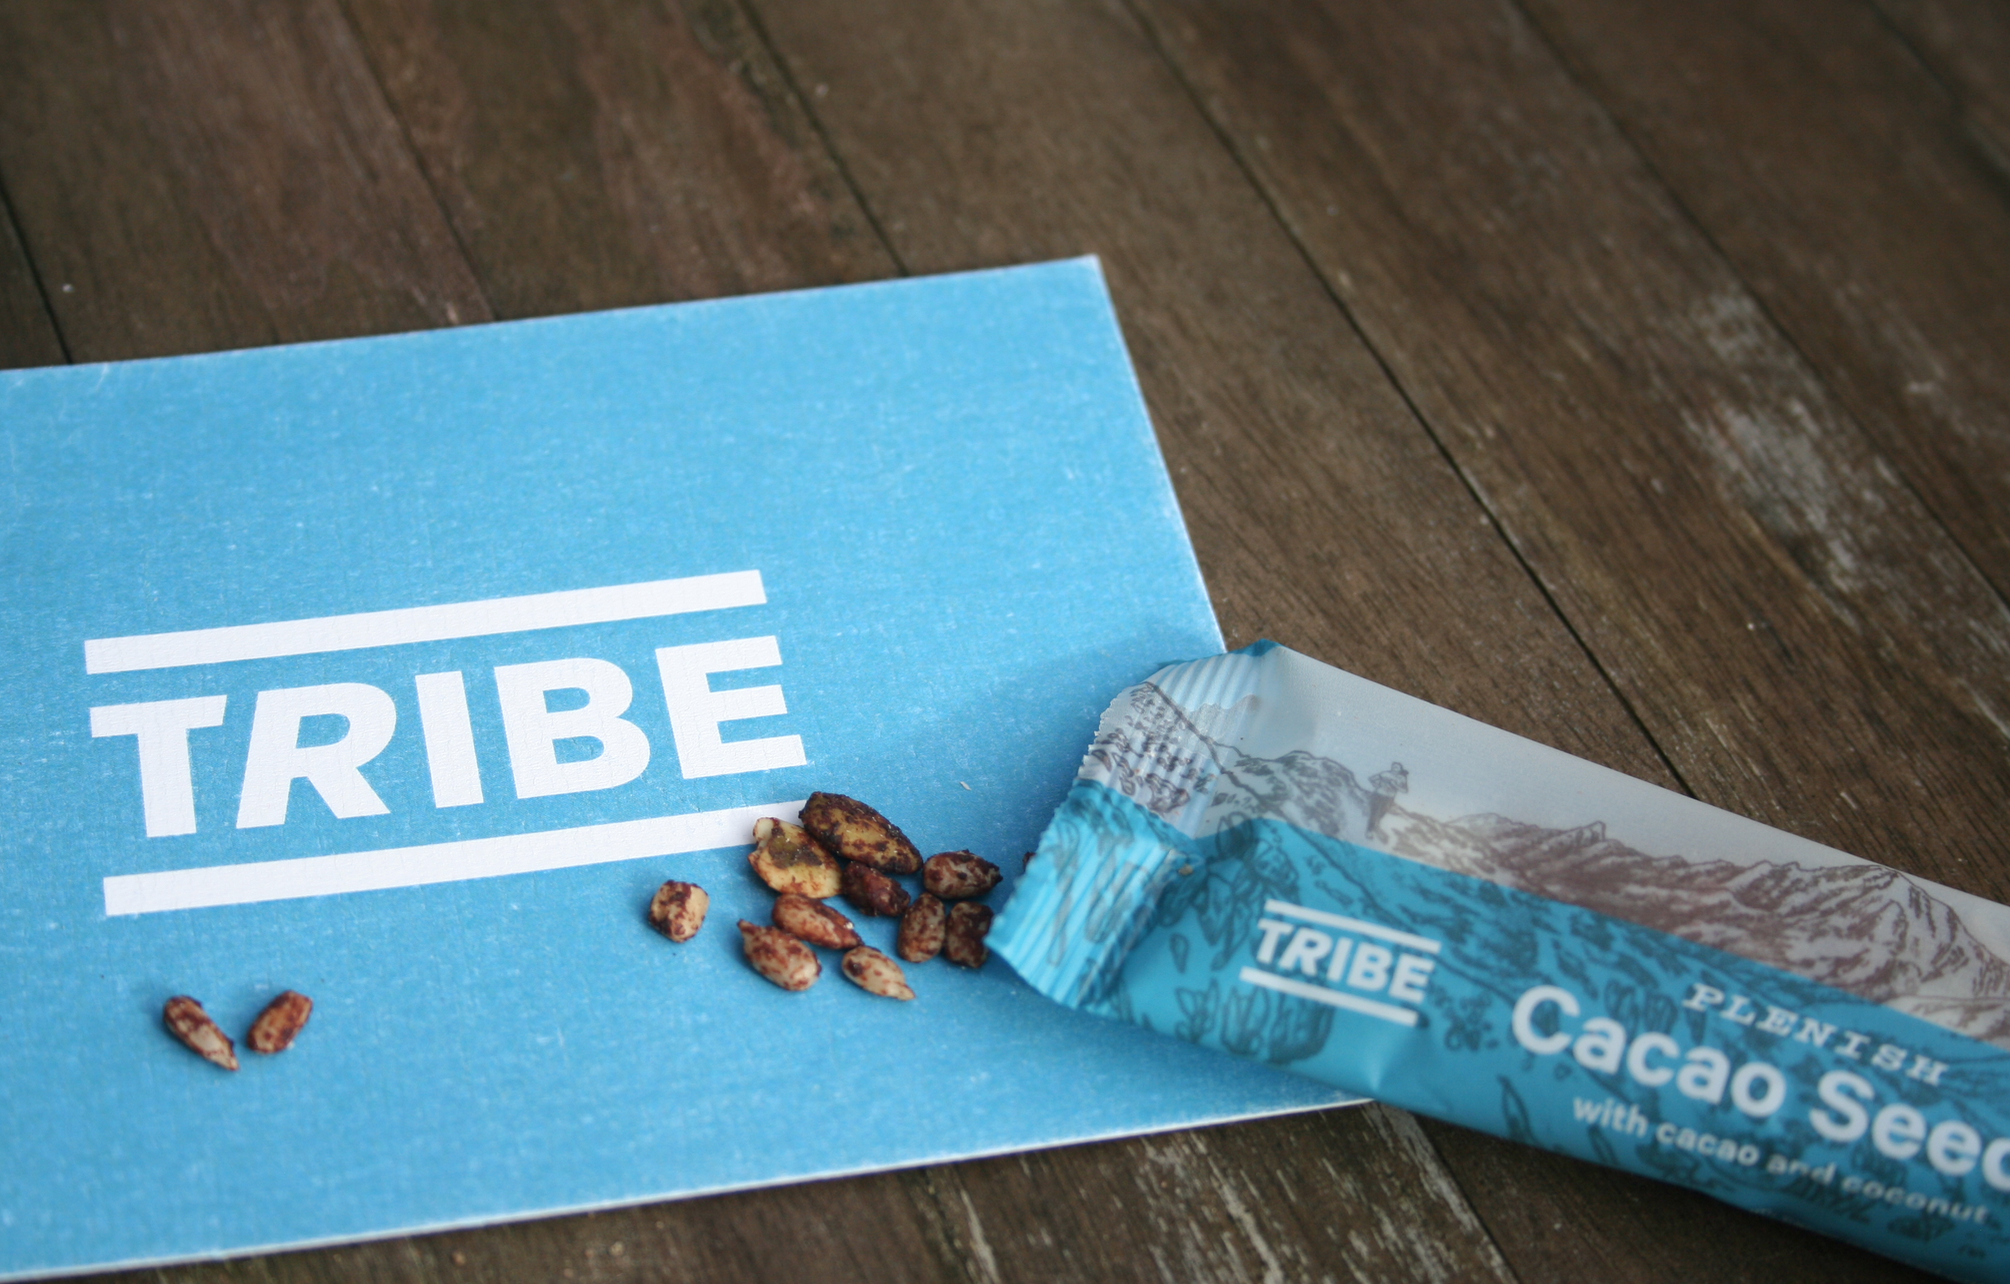 Tribe snackbox review